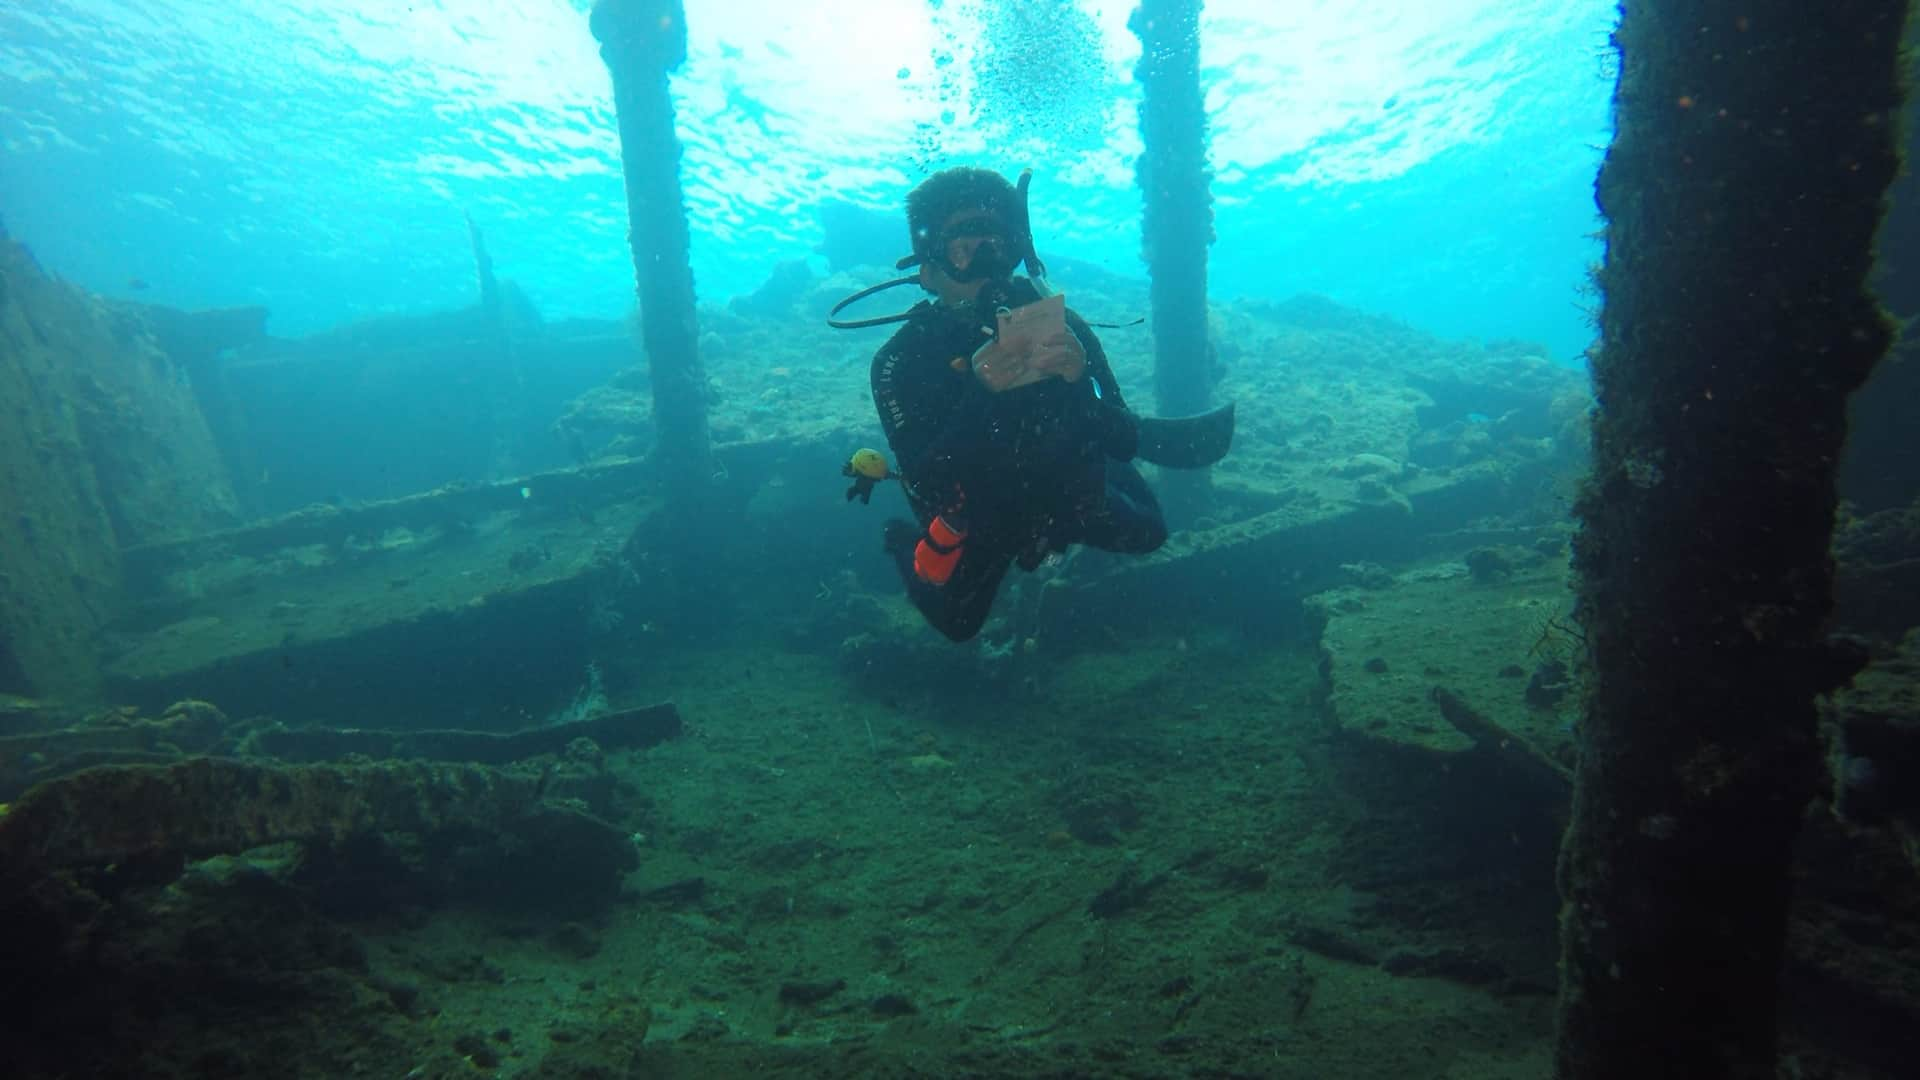 Diving in Amed and See the Legendary Wreck Ship | Two Fish Divers Amed